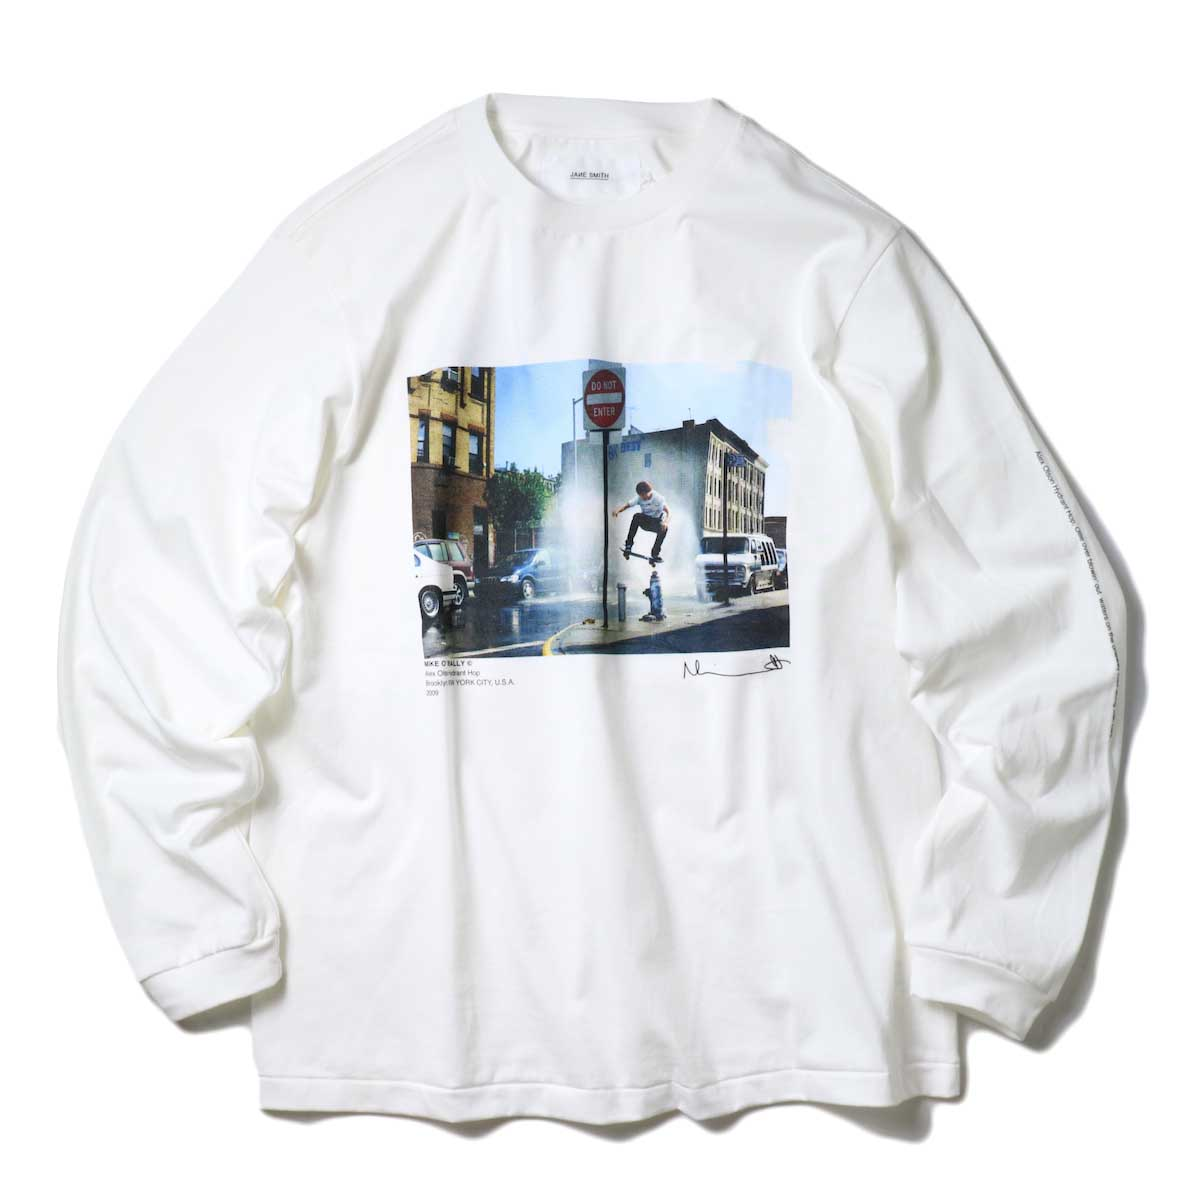 JANE SMITH / HYDRANT HOP L/S T-SHIRT